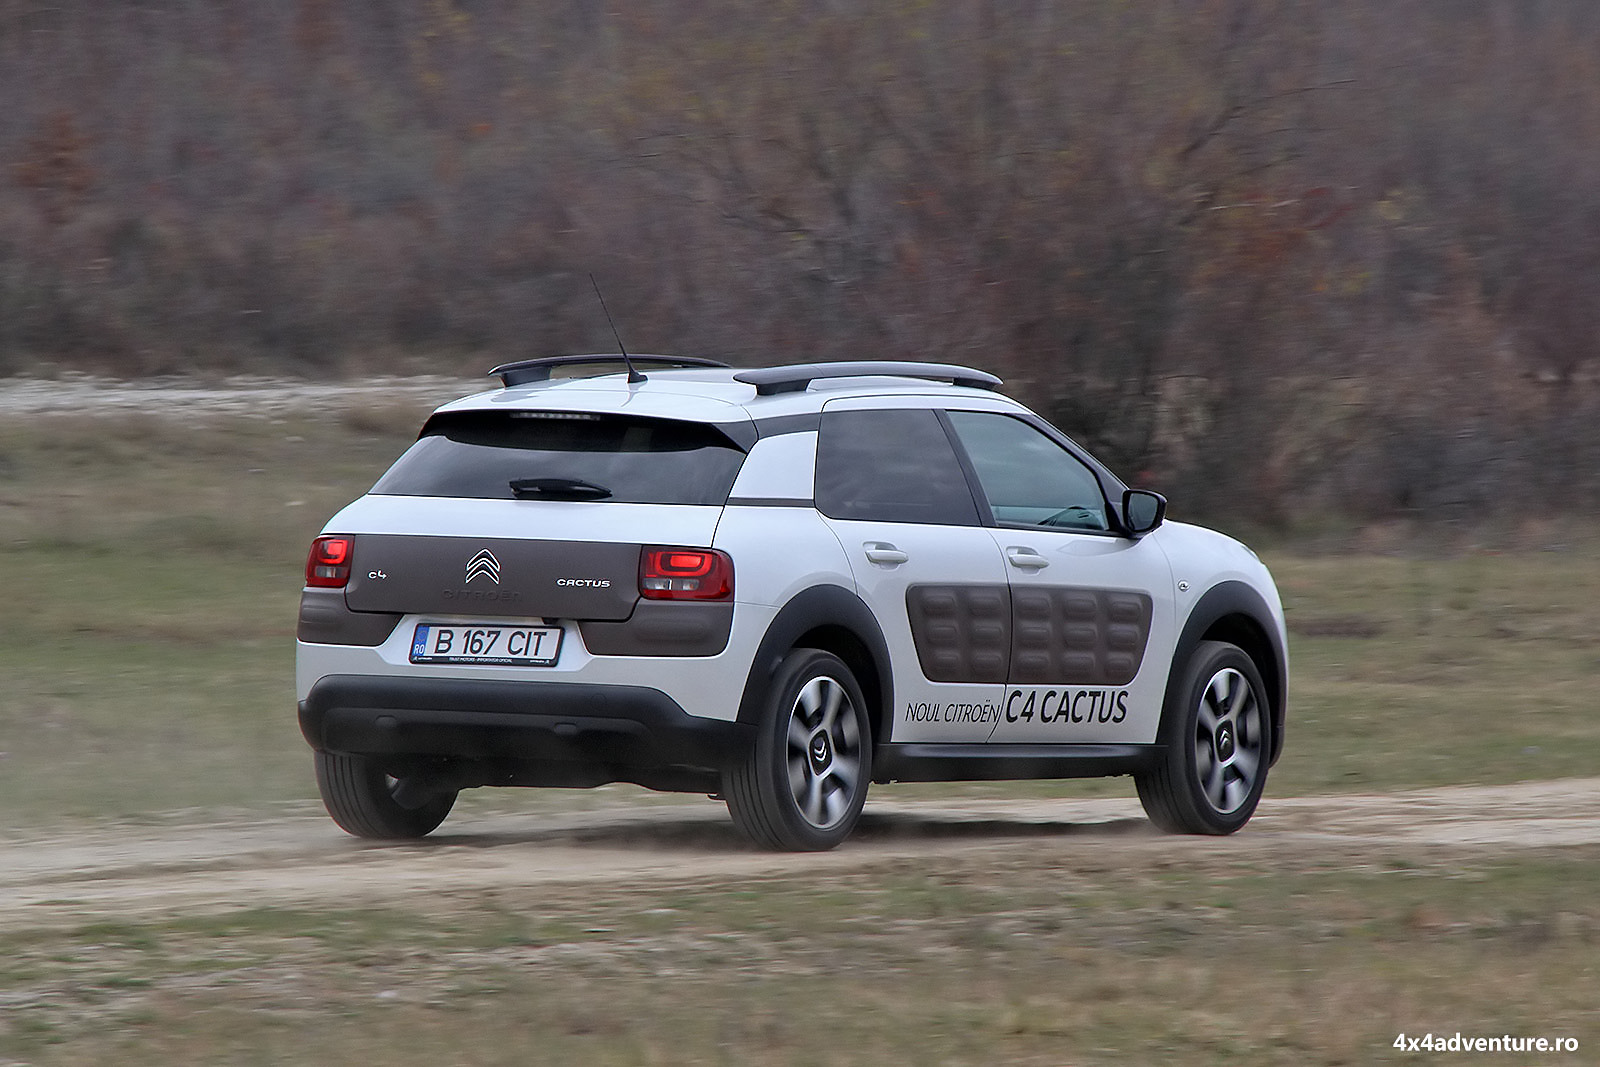 deloc intepator test drive citroen c4 cactus 4x4 adventure. Black Bedroom Furniture Sets. Home Design Ideas